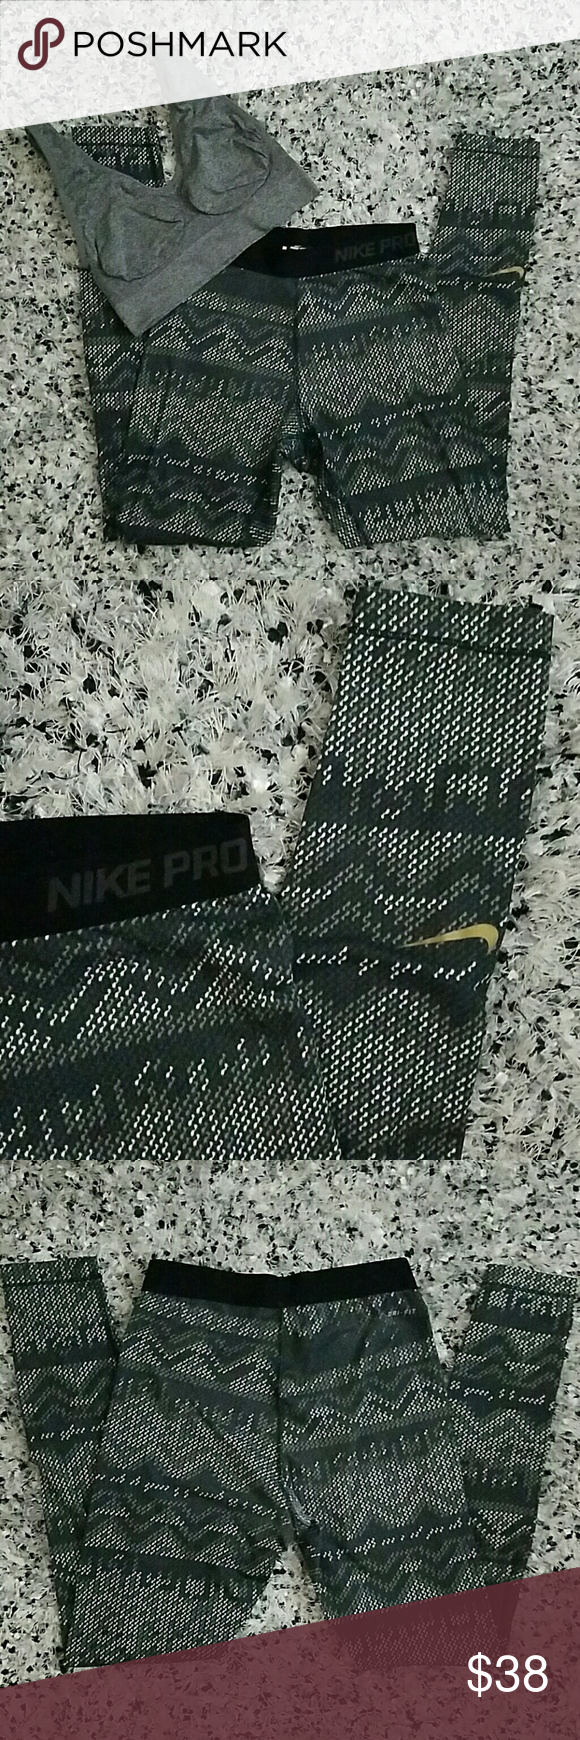 NIKE DRI-FIT LEGGING The Nike Dri-fit legging provides warmth while also wicking away sweat and odor! Good condition, minimal fading as seen in images. Need a new home because I have way too many leggings!  *PRICE IS FIRM UNLESS BUNDLED FOR THE BUNDLE DISCOUNT. Nike Pants Leggings